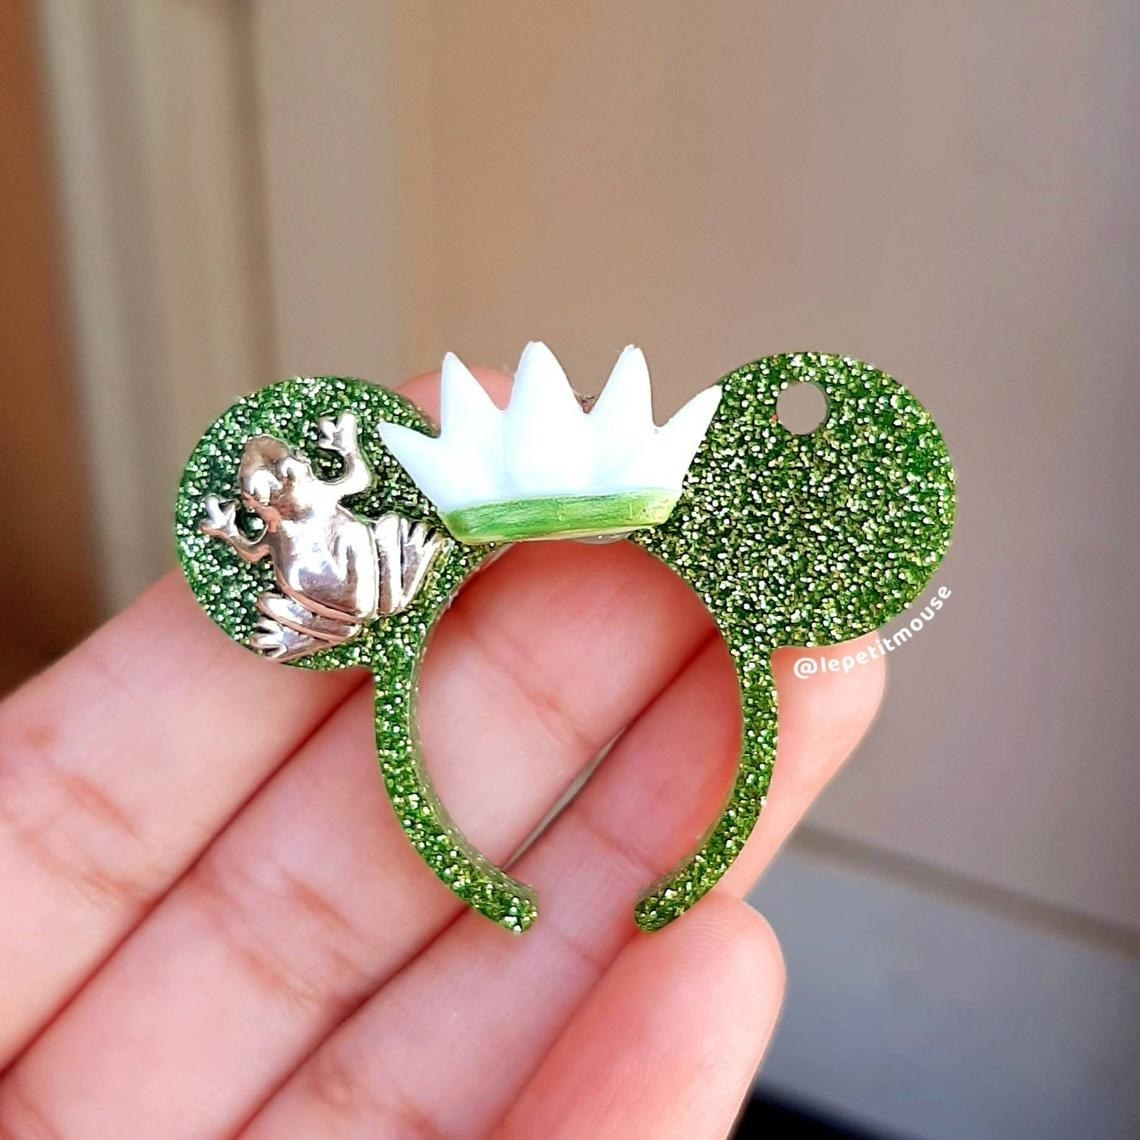 glittery mouse ears with white crown and frog on one ear